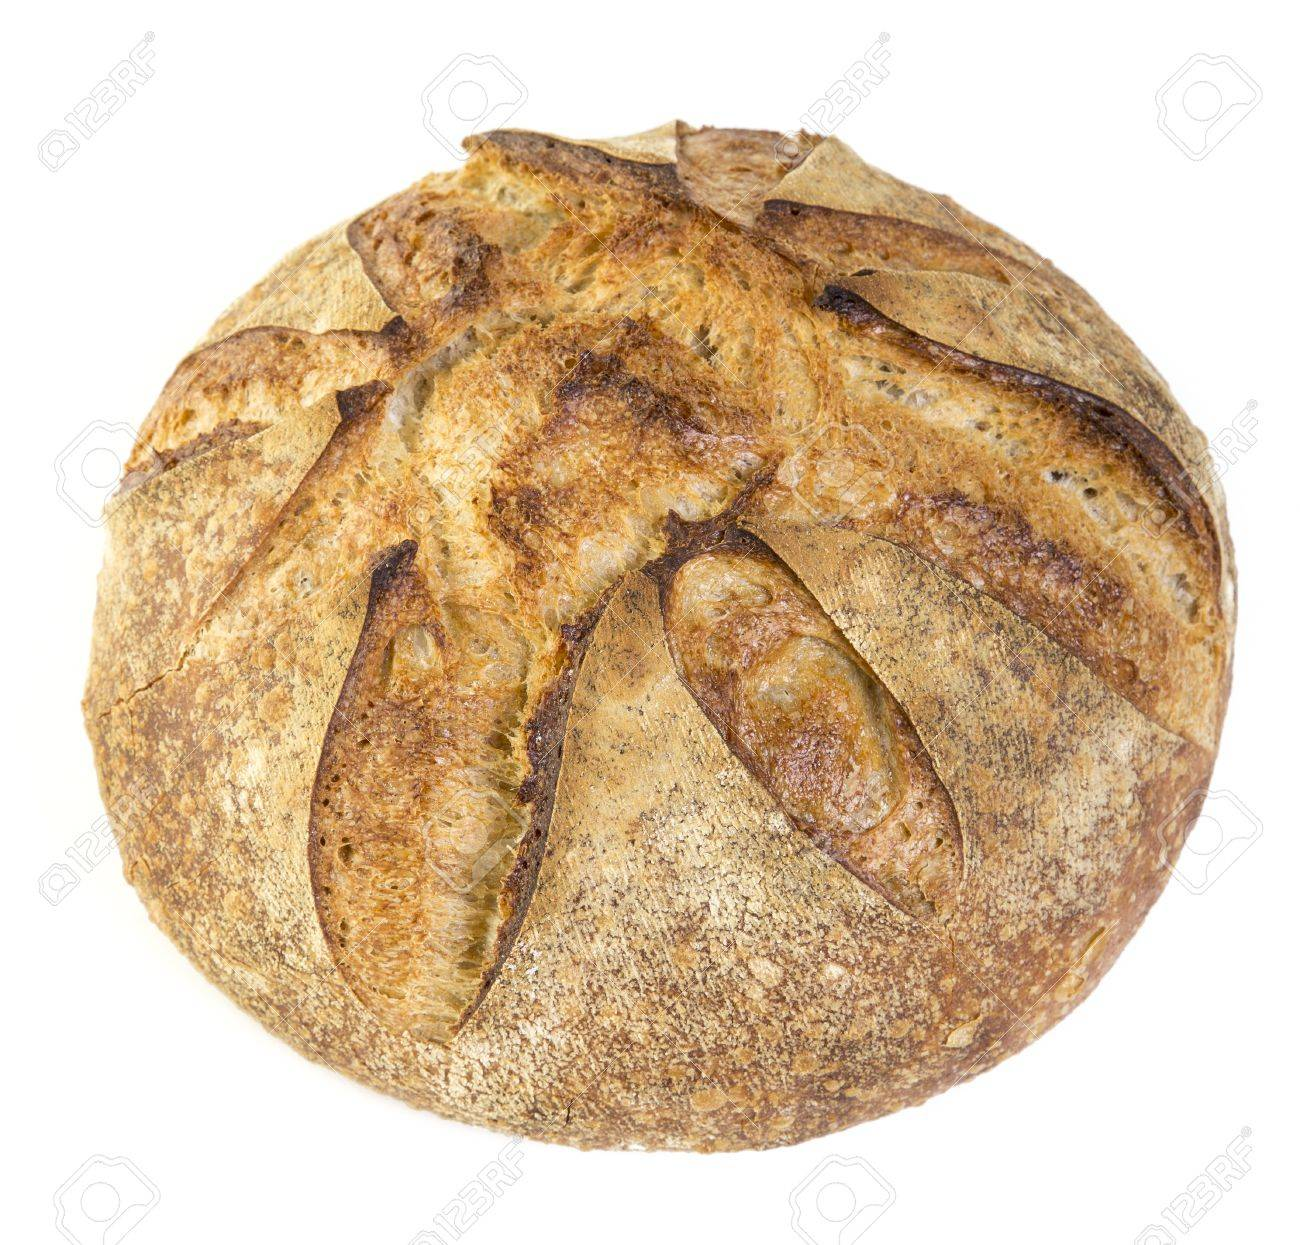 Fresh Baked Crusty Artisan Bread Over White Background Stock Photo